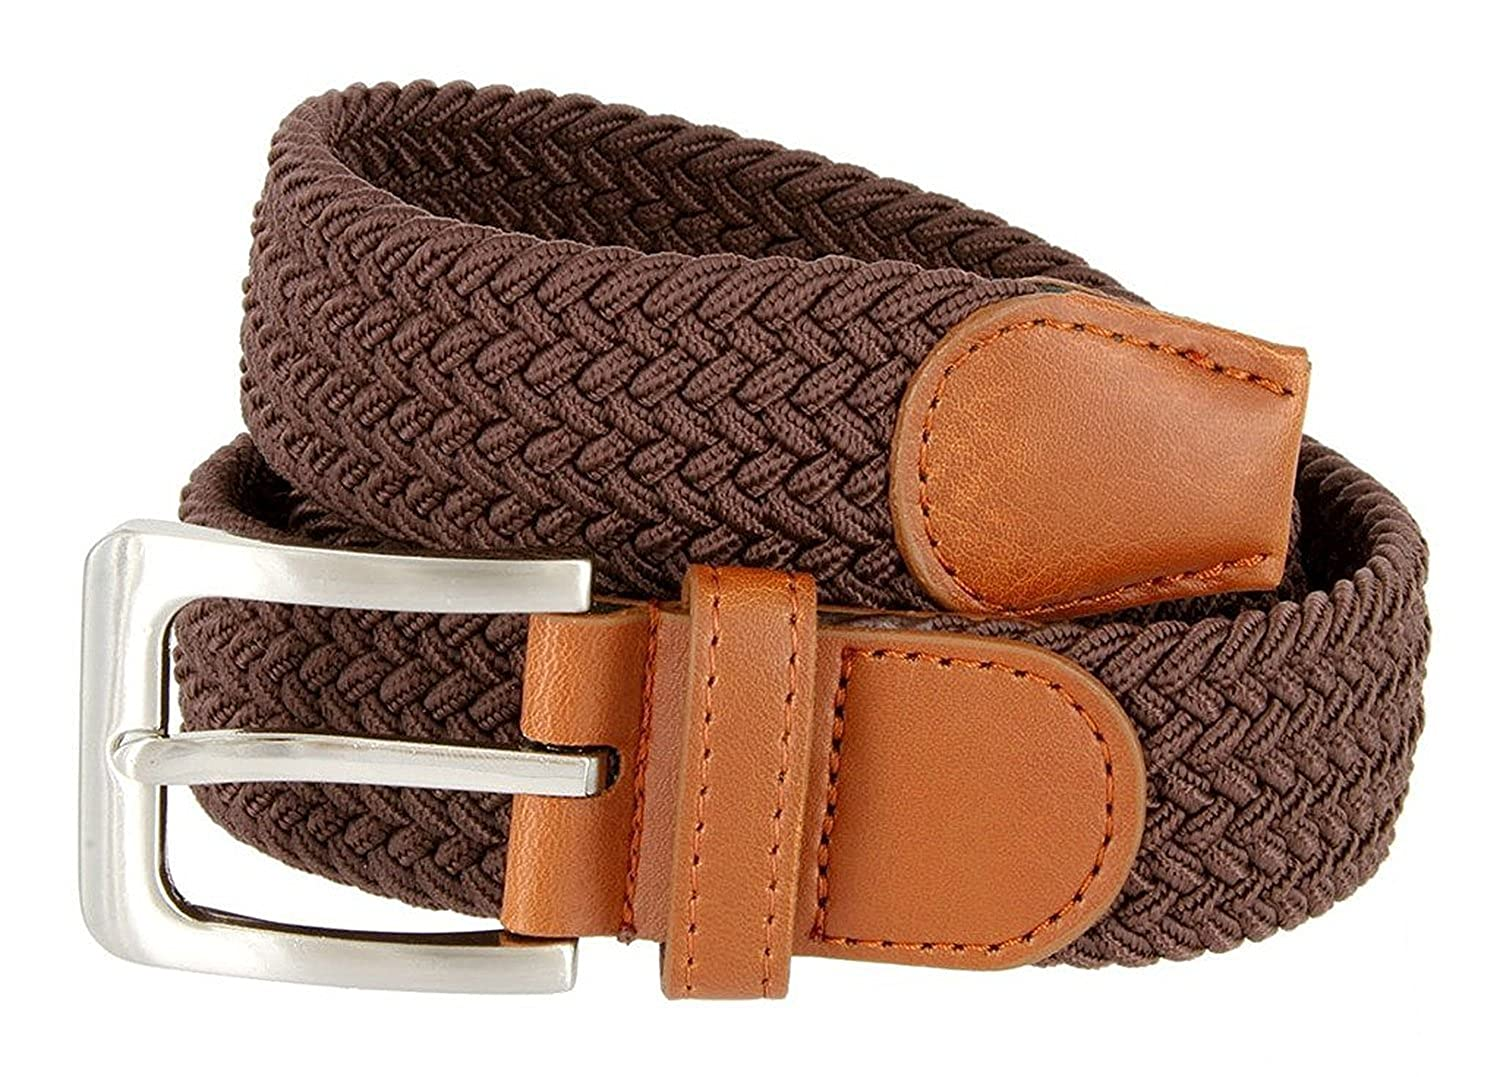 Hagora Mens Braided Flexible Fabric Leather Elements 1-3//8 Wide Buckle Belt